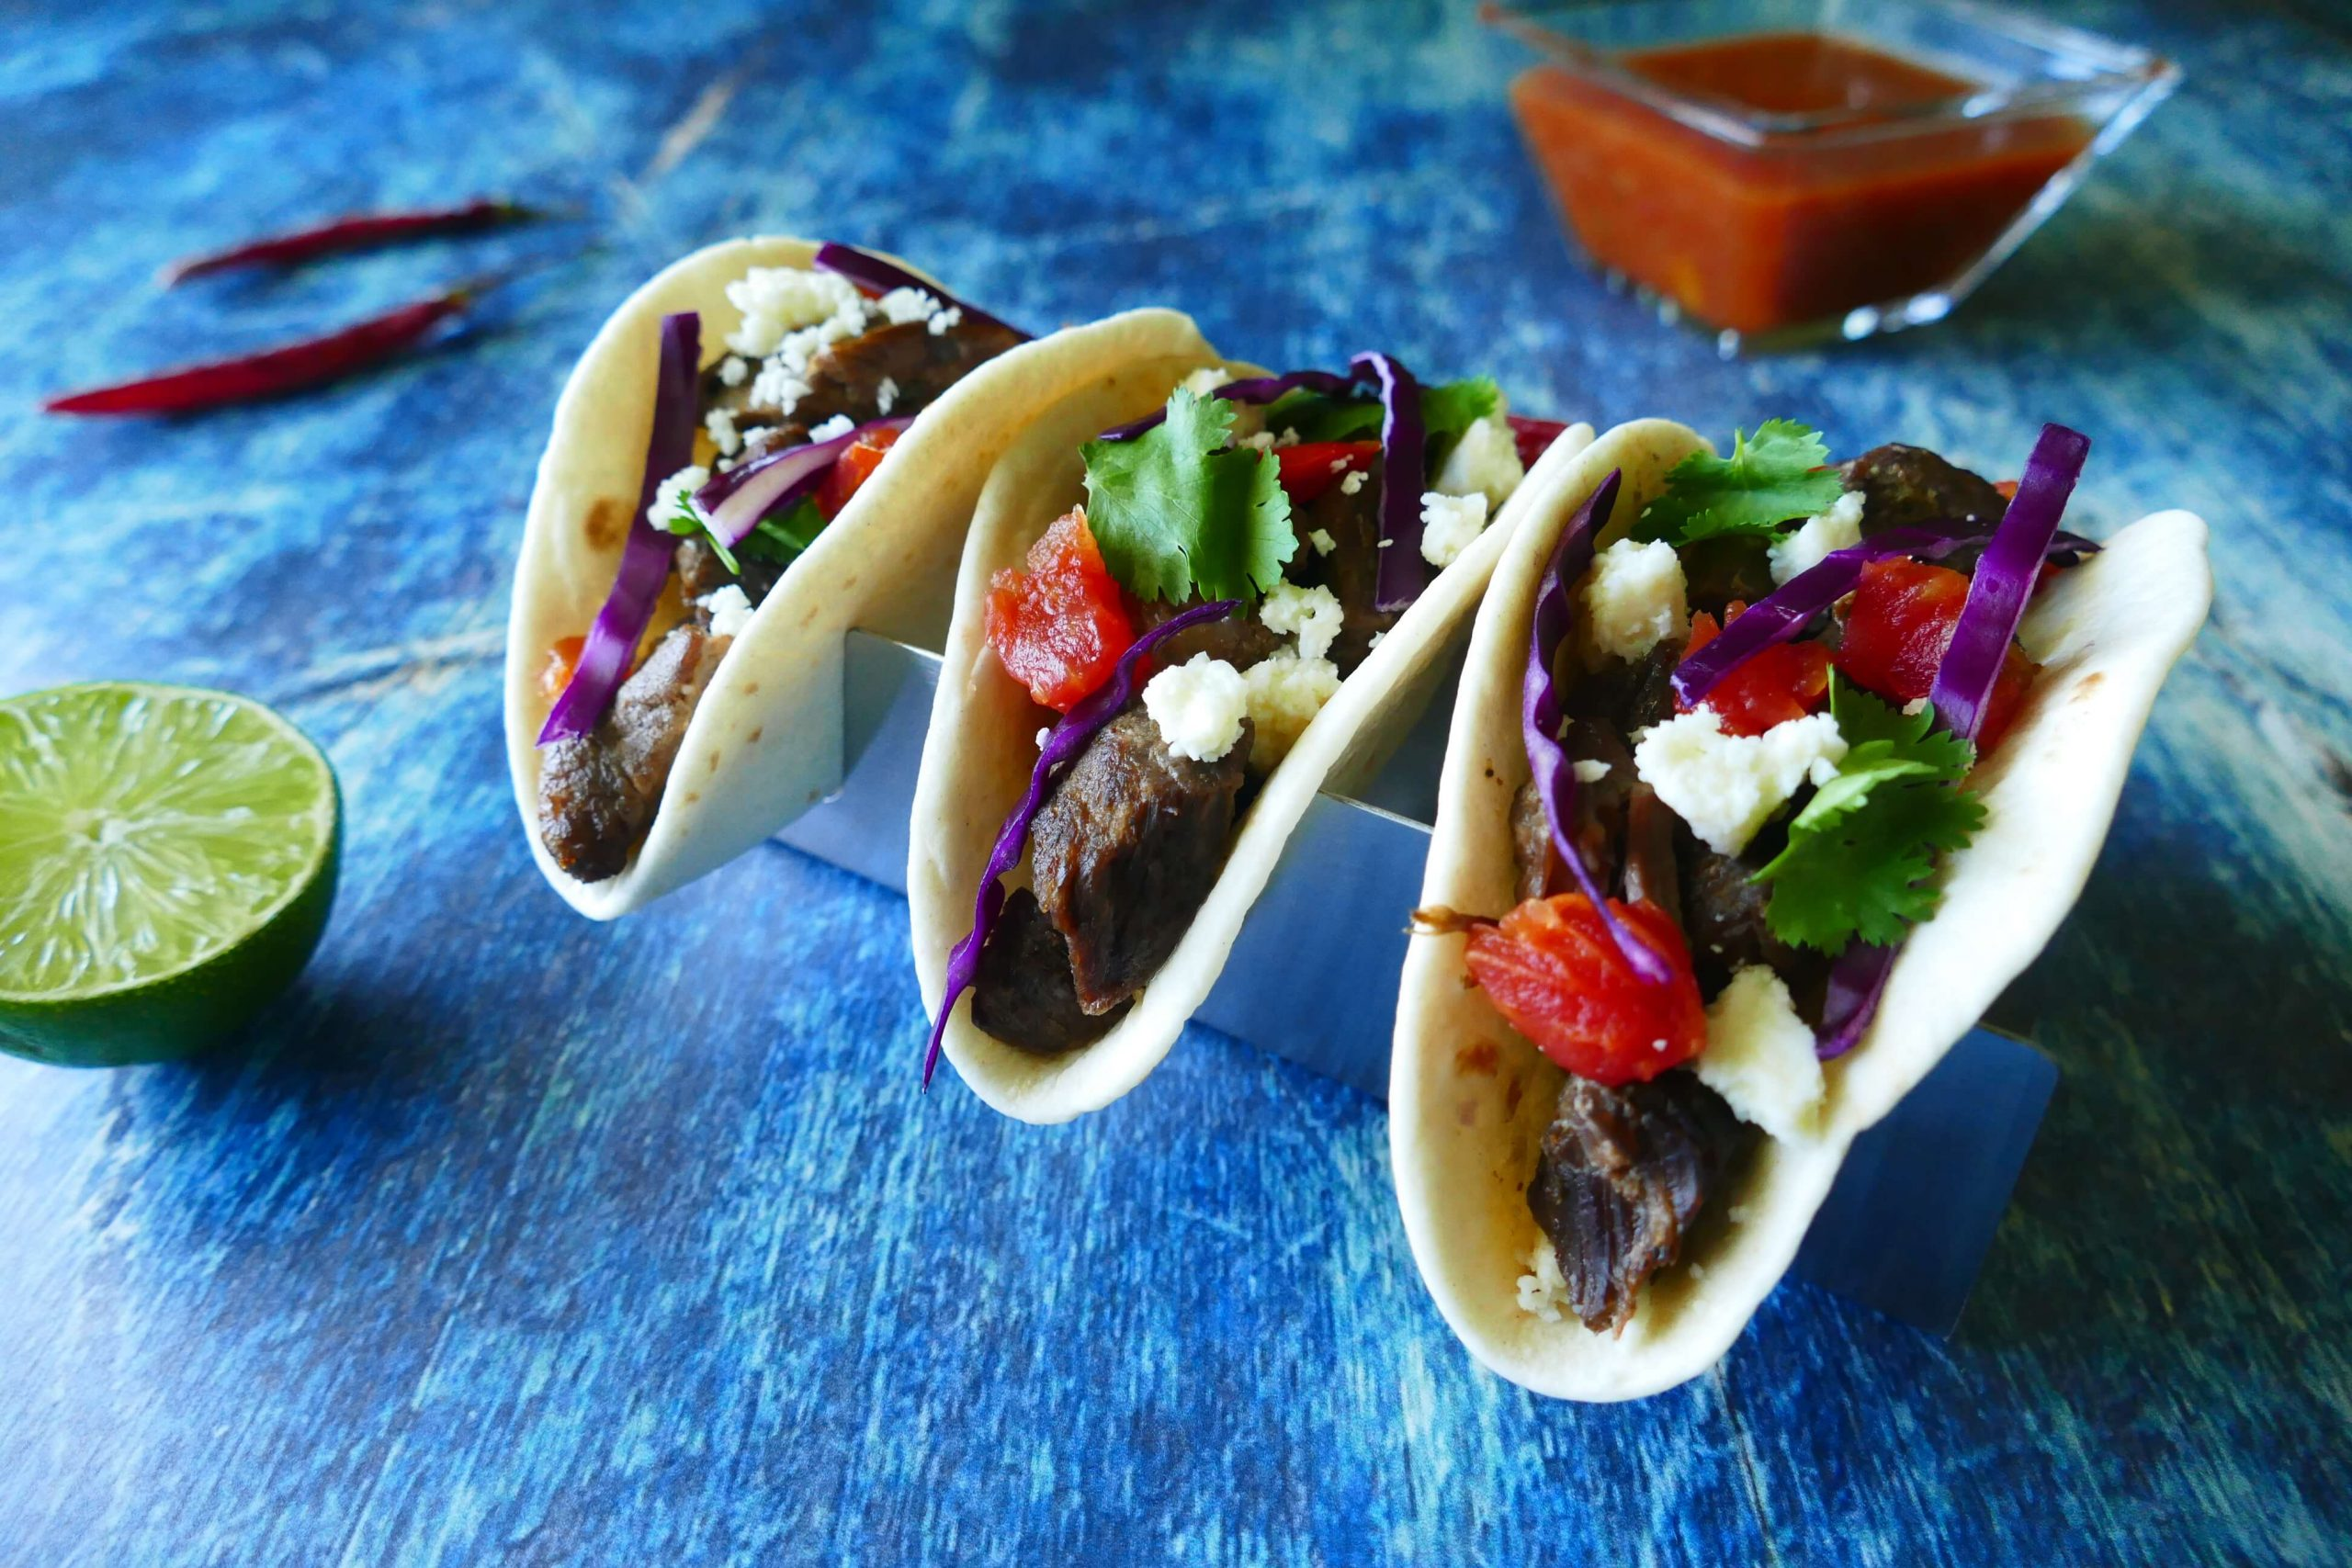 Instant Pot Carne Asada - three tacos with purple cabbage, tomatoes, cheese, cilantro on a blue background with salsa, red chilis and cut lime